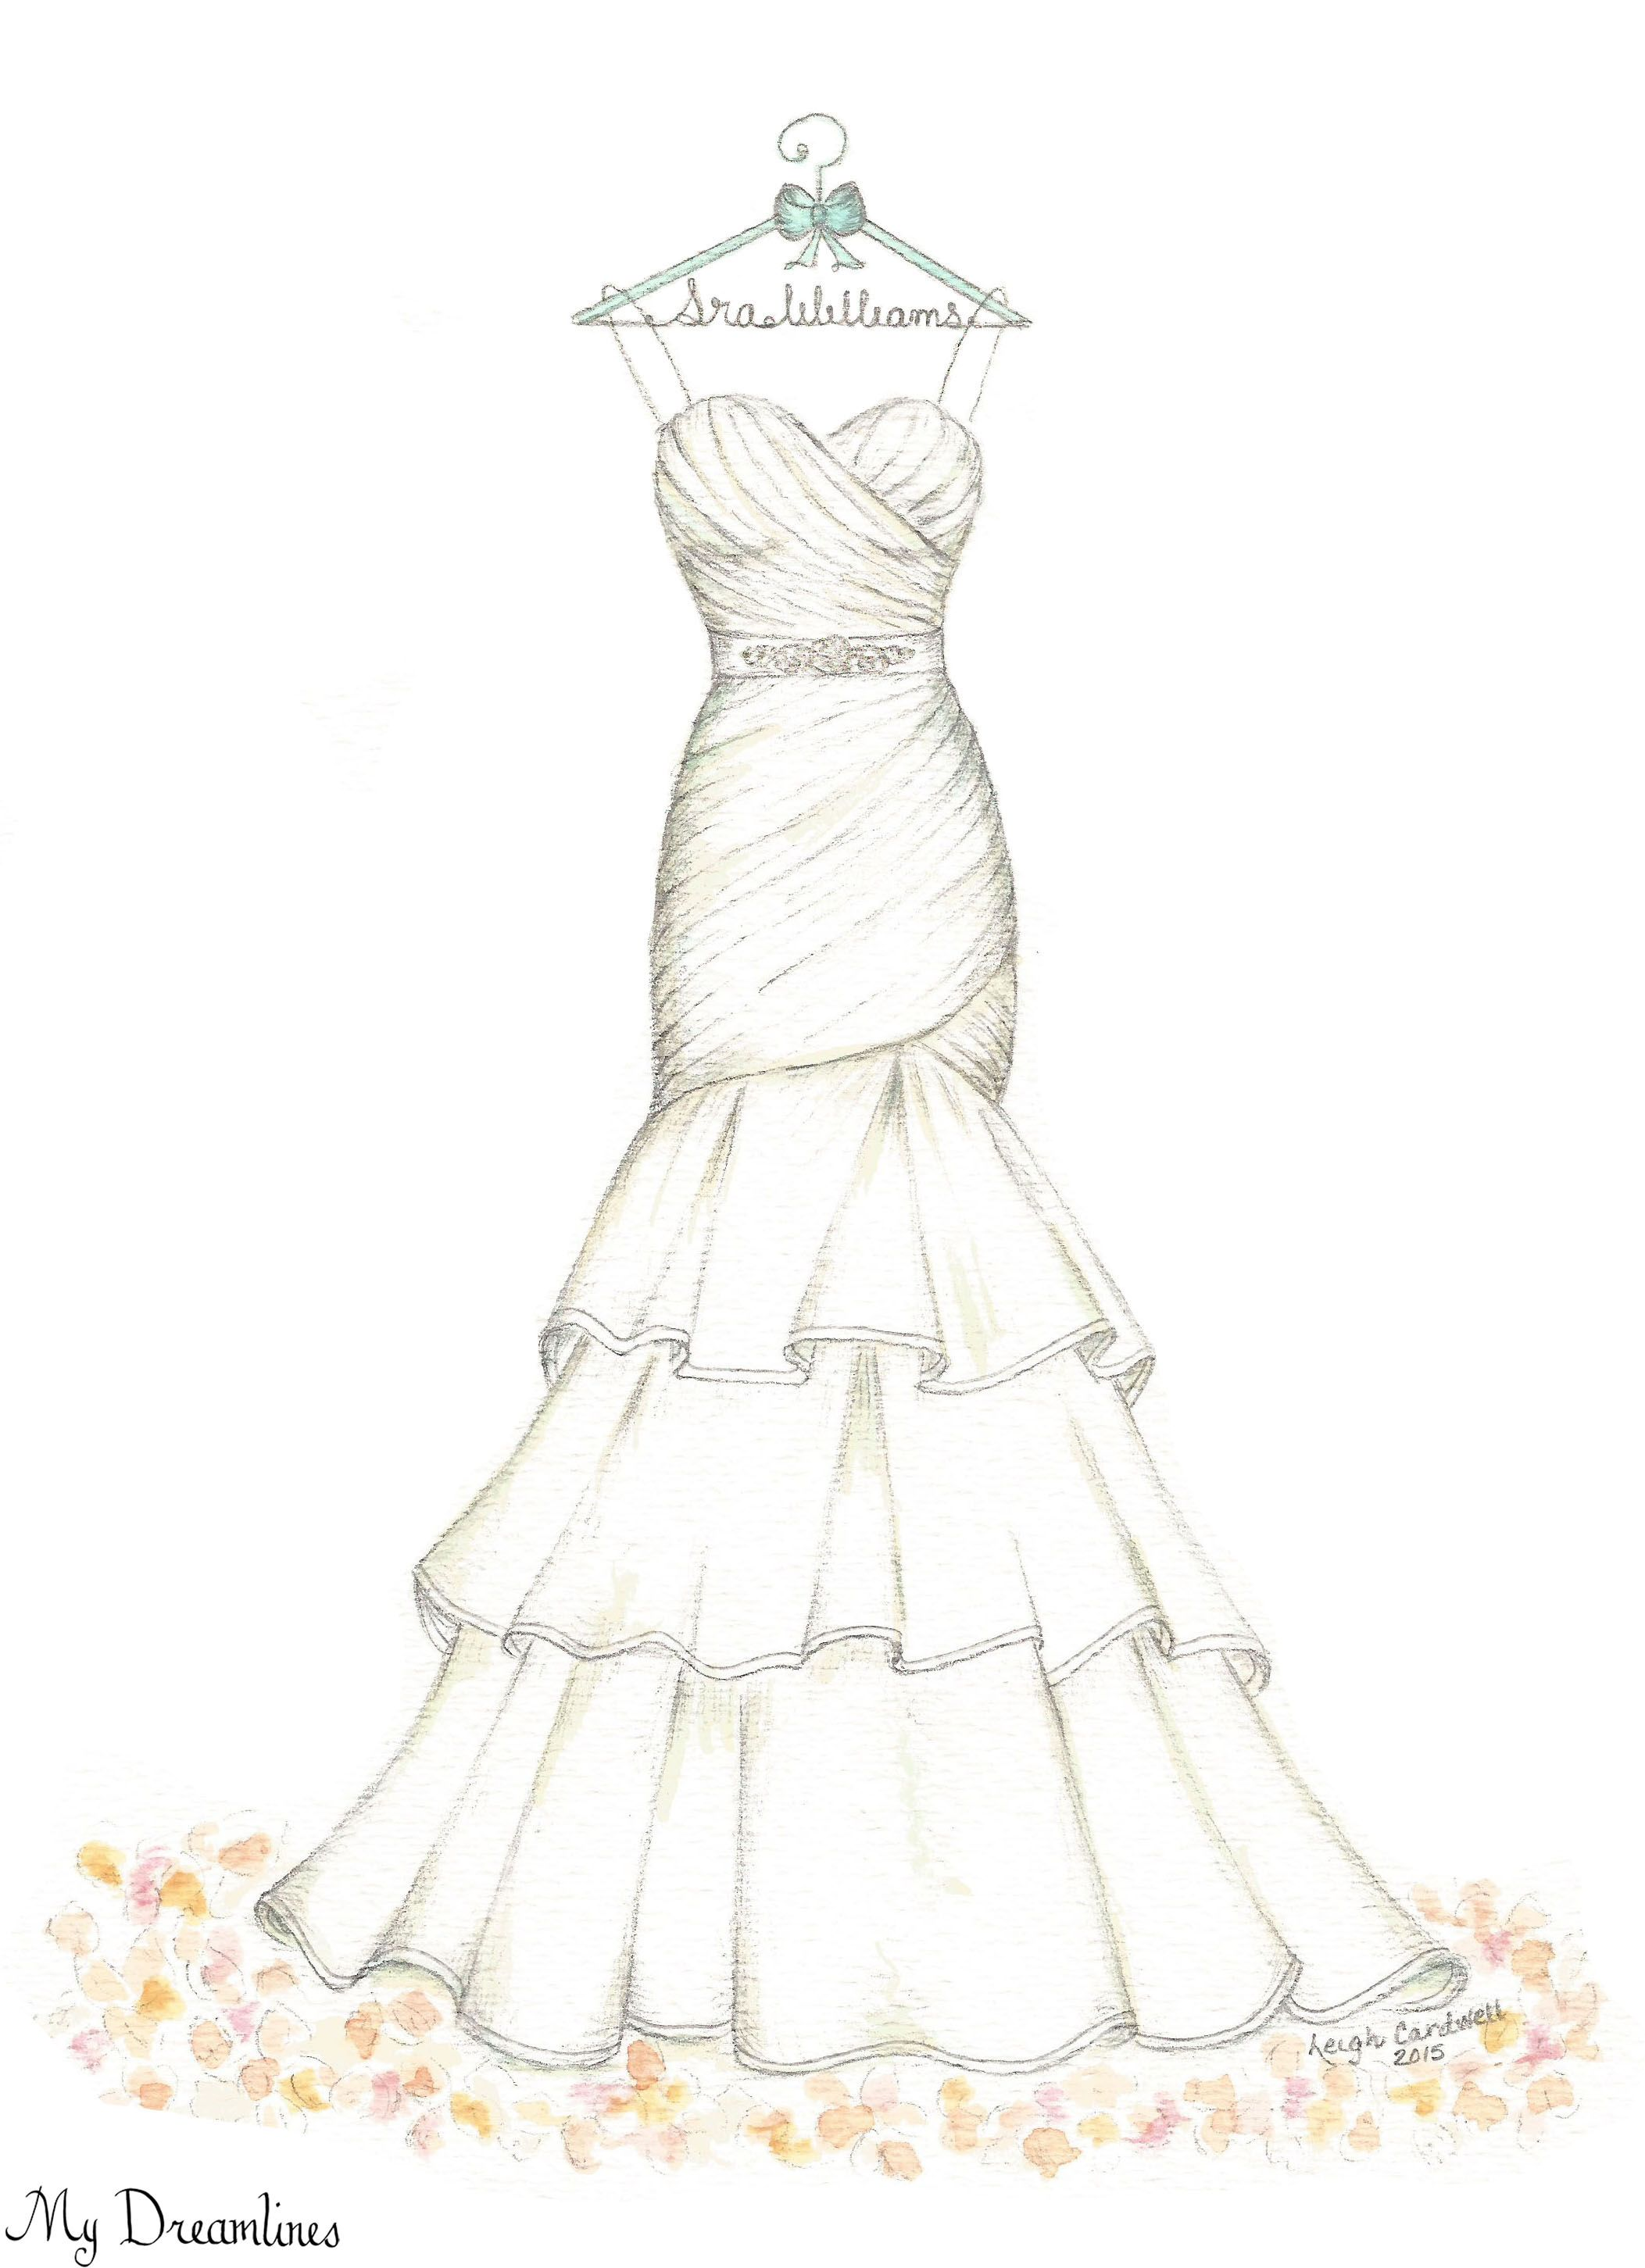 Dreamlines Wedding Dress Sketch Oneyearanniversarygift Anniversarygift Weddinggift Www Mydreamlines